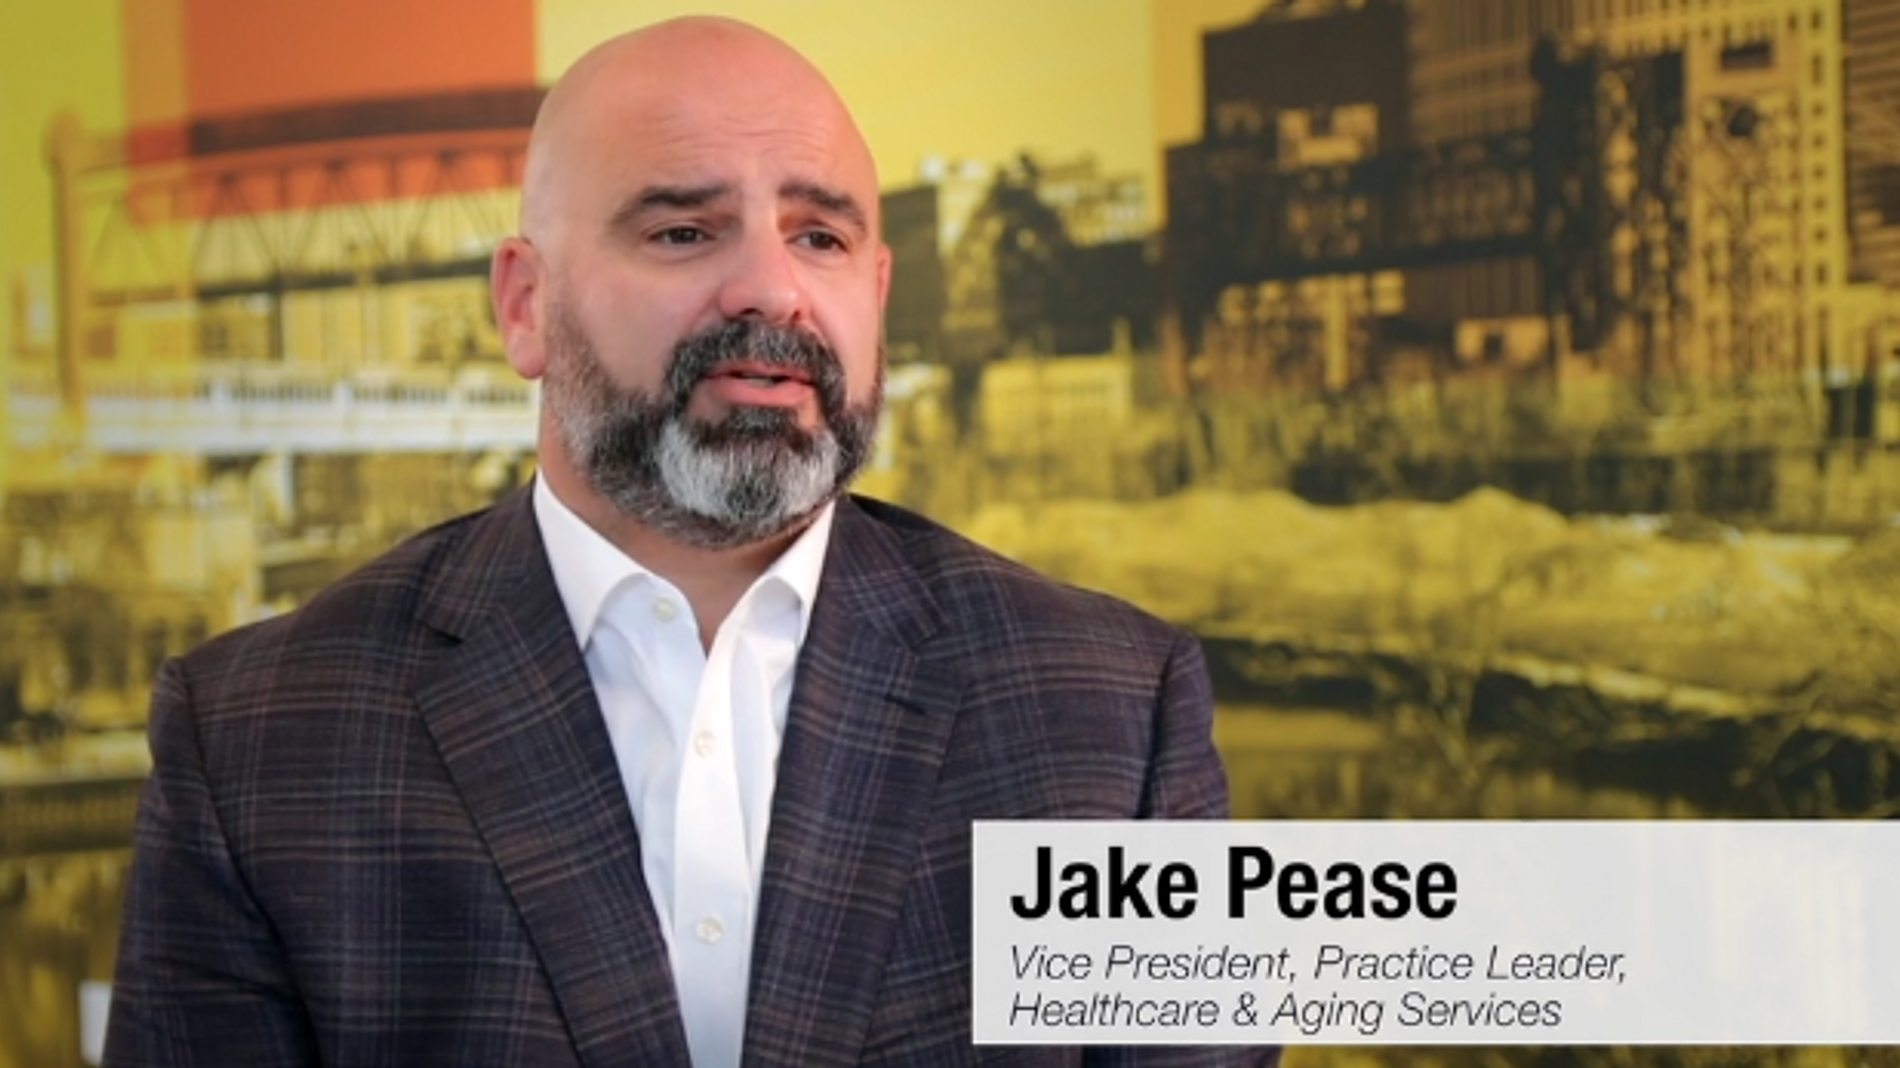 Jake Pease video preview